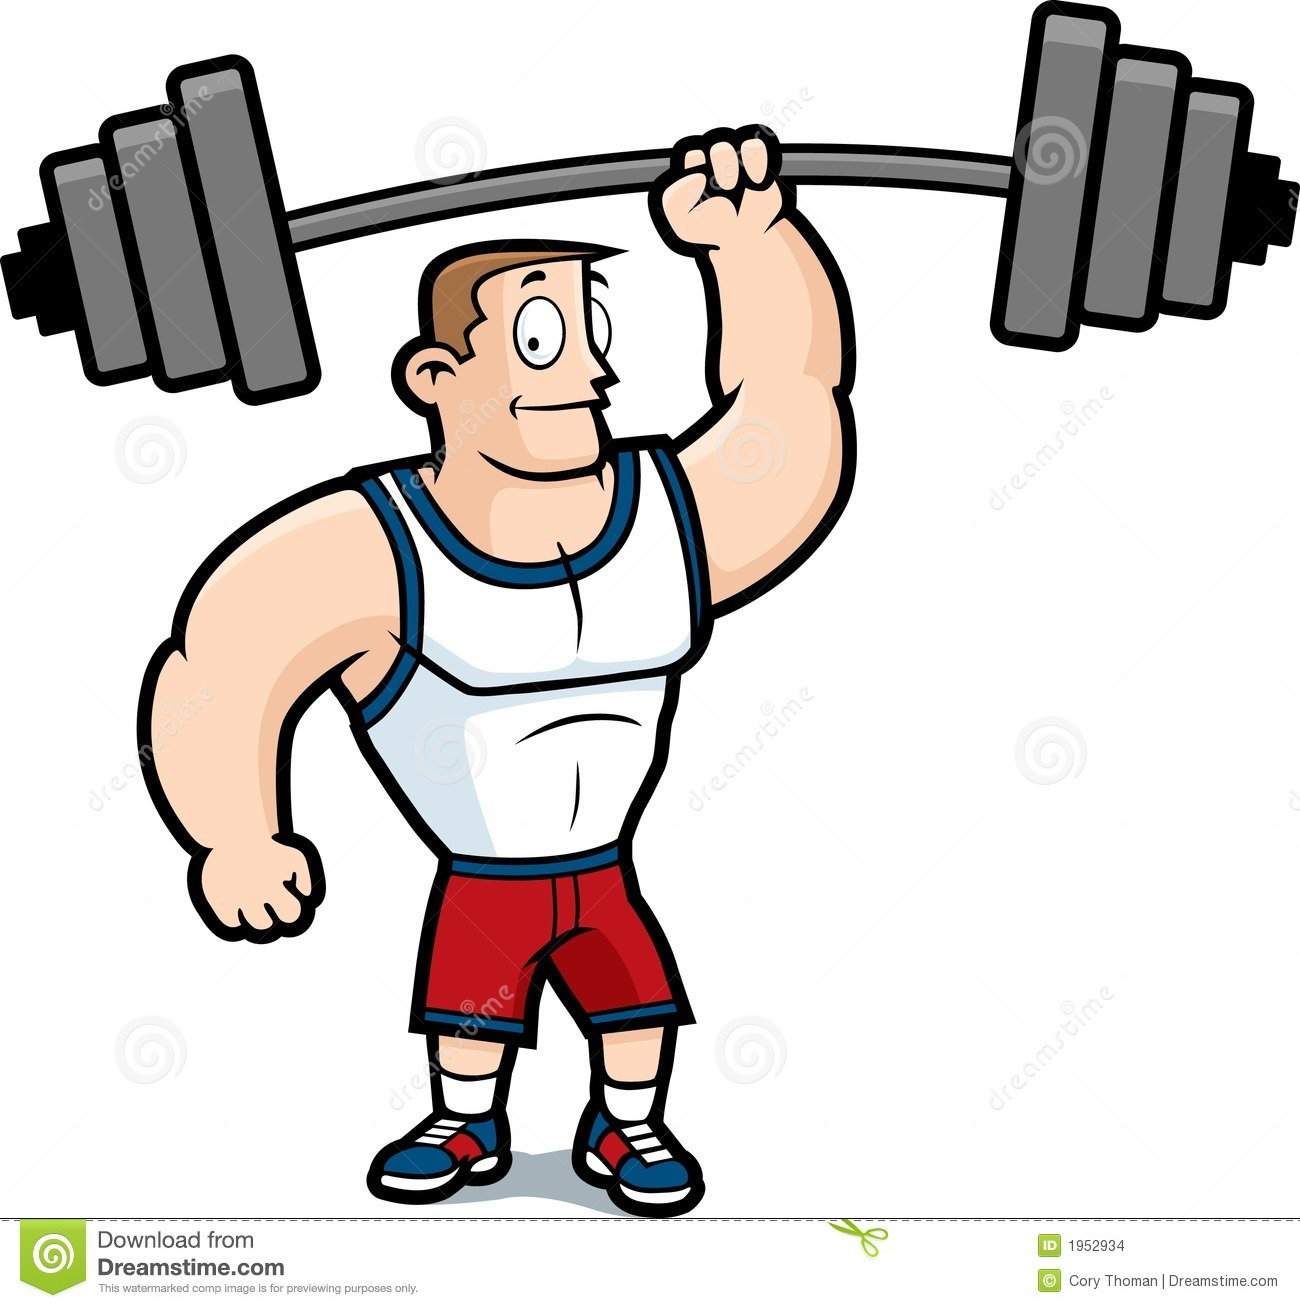 Going to the gym clipart